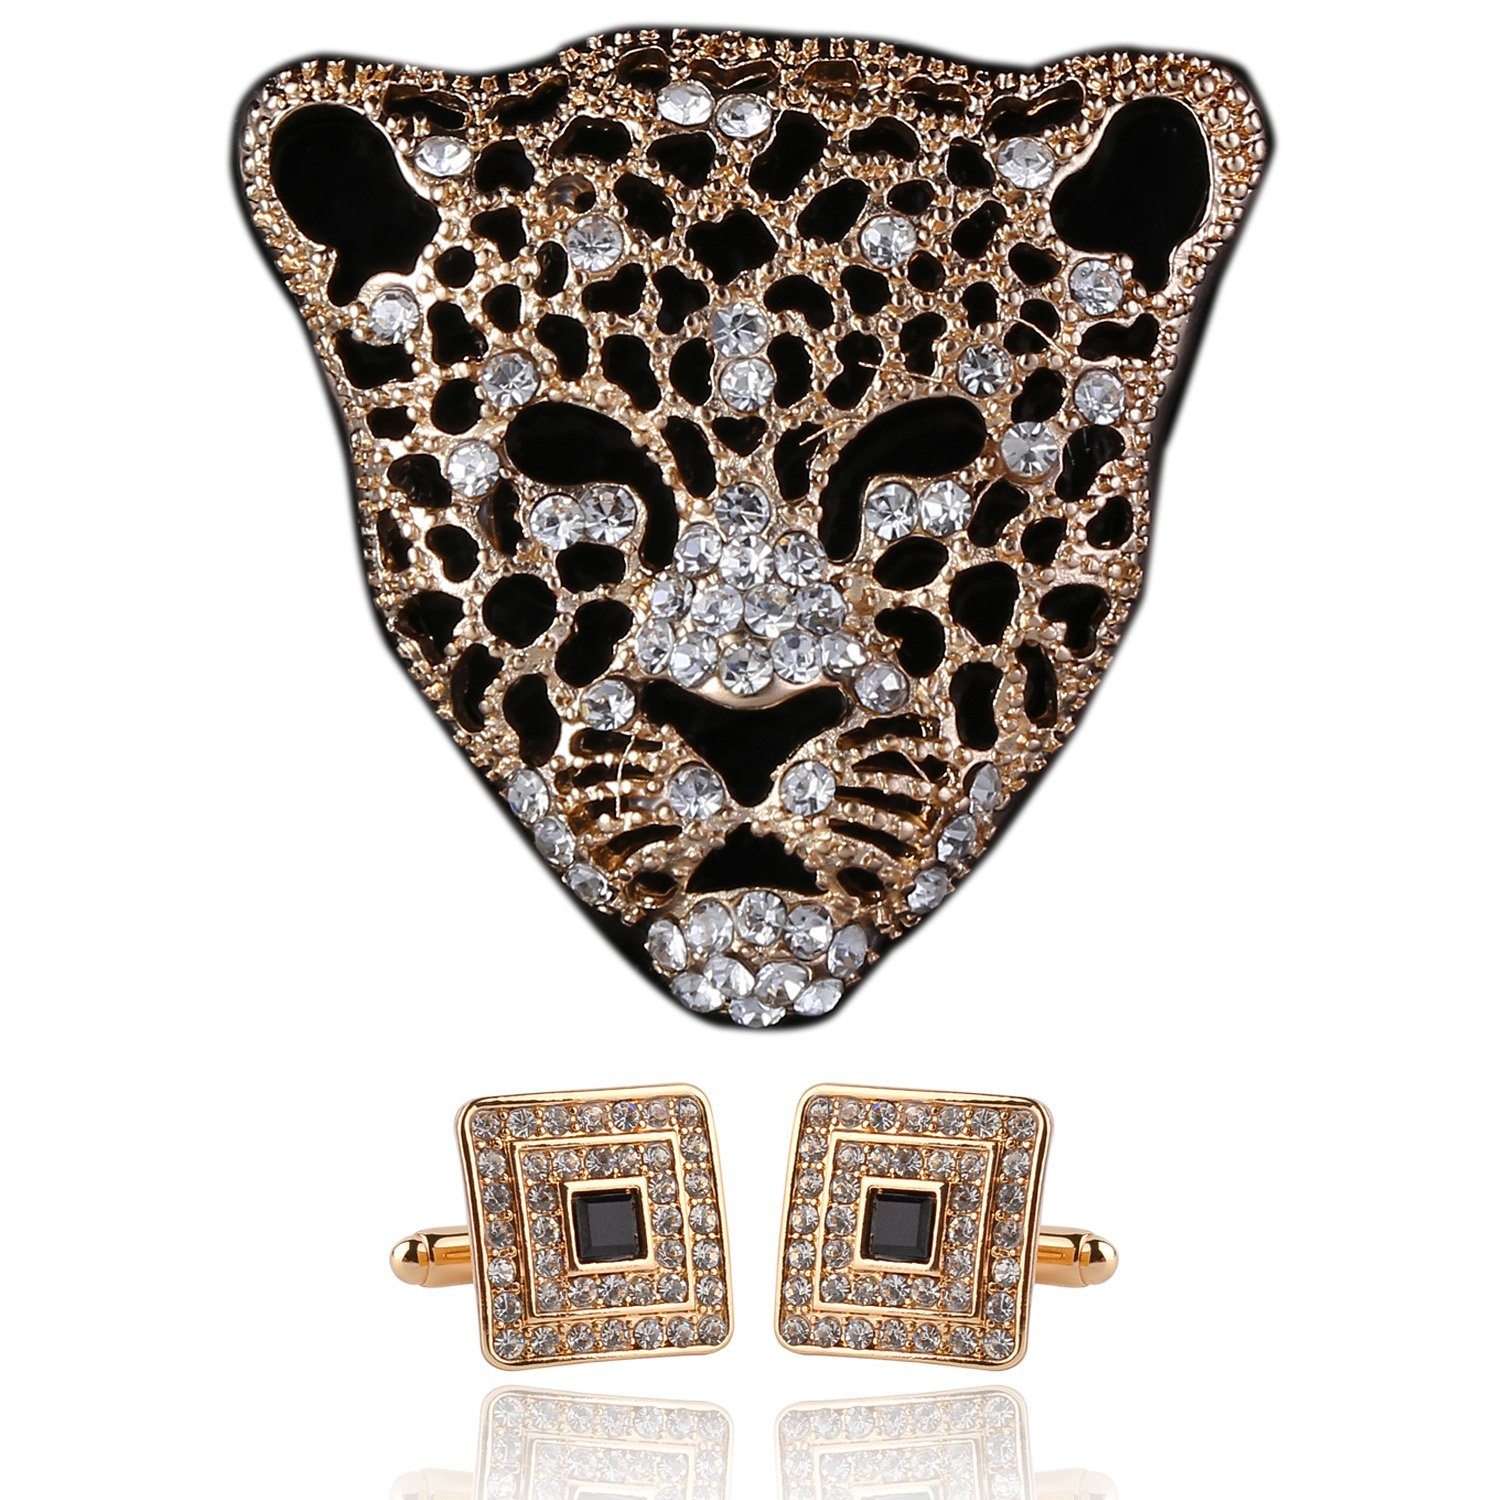 Leopard Brooch Pin Jewelry for Men Suits for Boyfriend from Daughter Papa Gifts